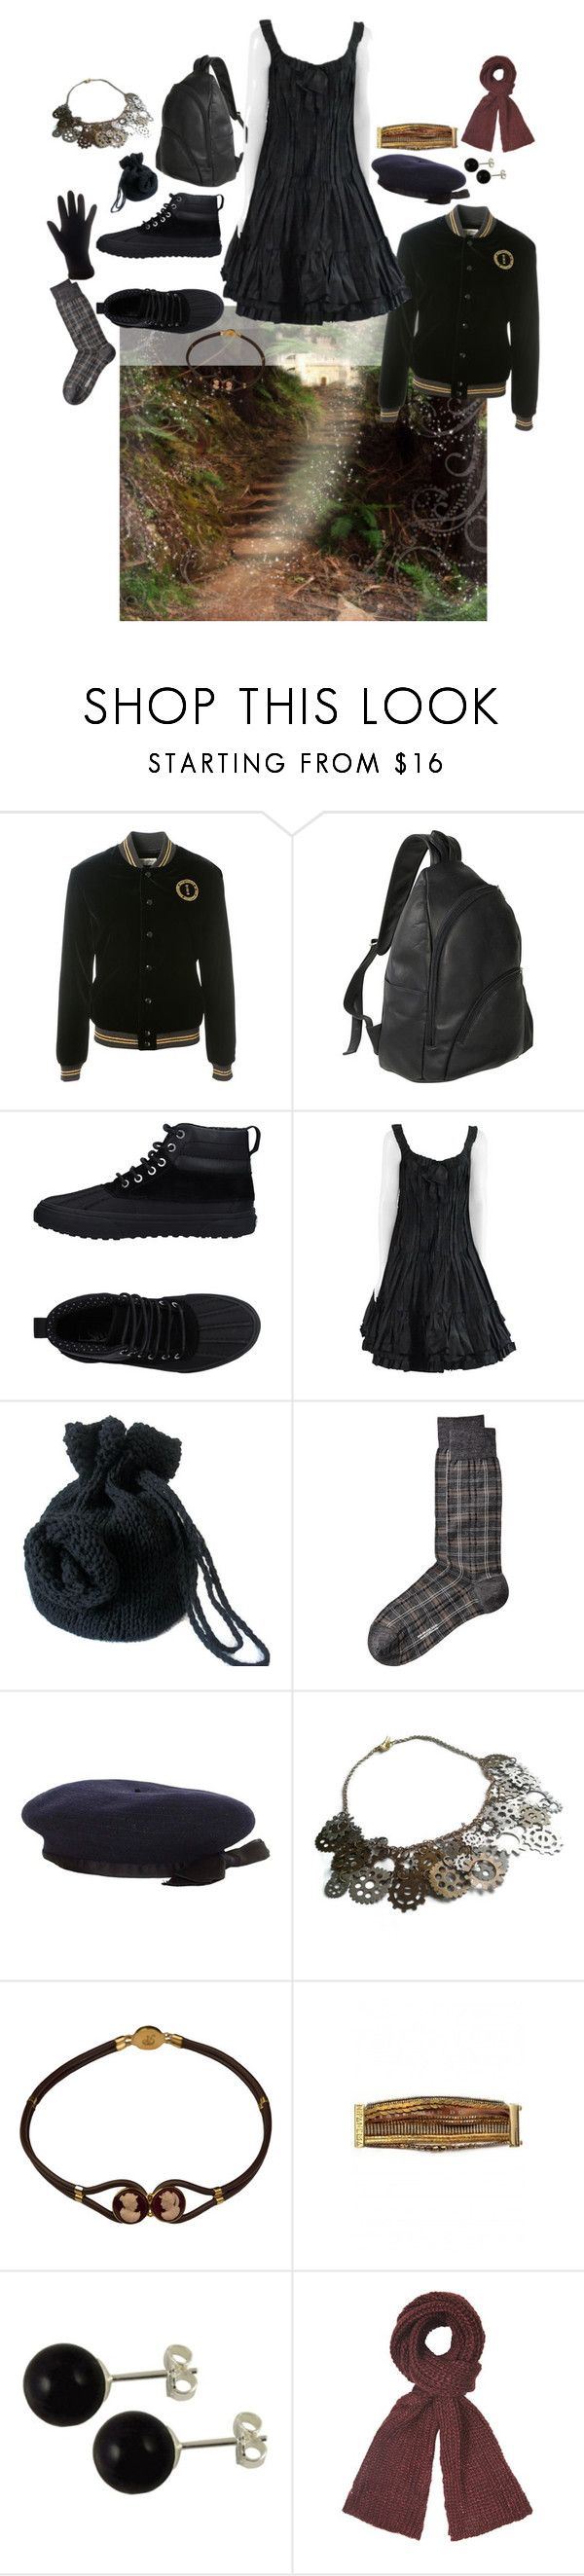 """Got a scarf"" by amanda-anda-panda ❤ liked on Polyvore featuring Yves Saint Laurent, Le Donne, Vans, Oscar de la Renta, Chanel, Hipanema and Dorothy Perkins"